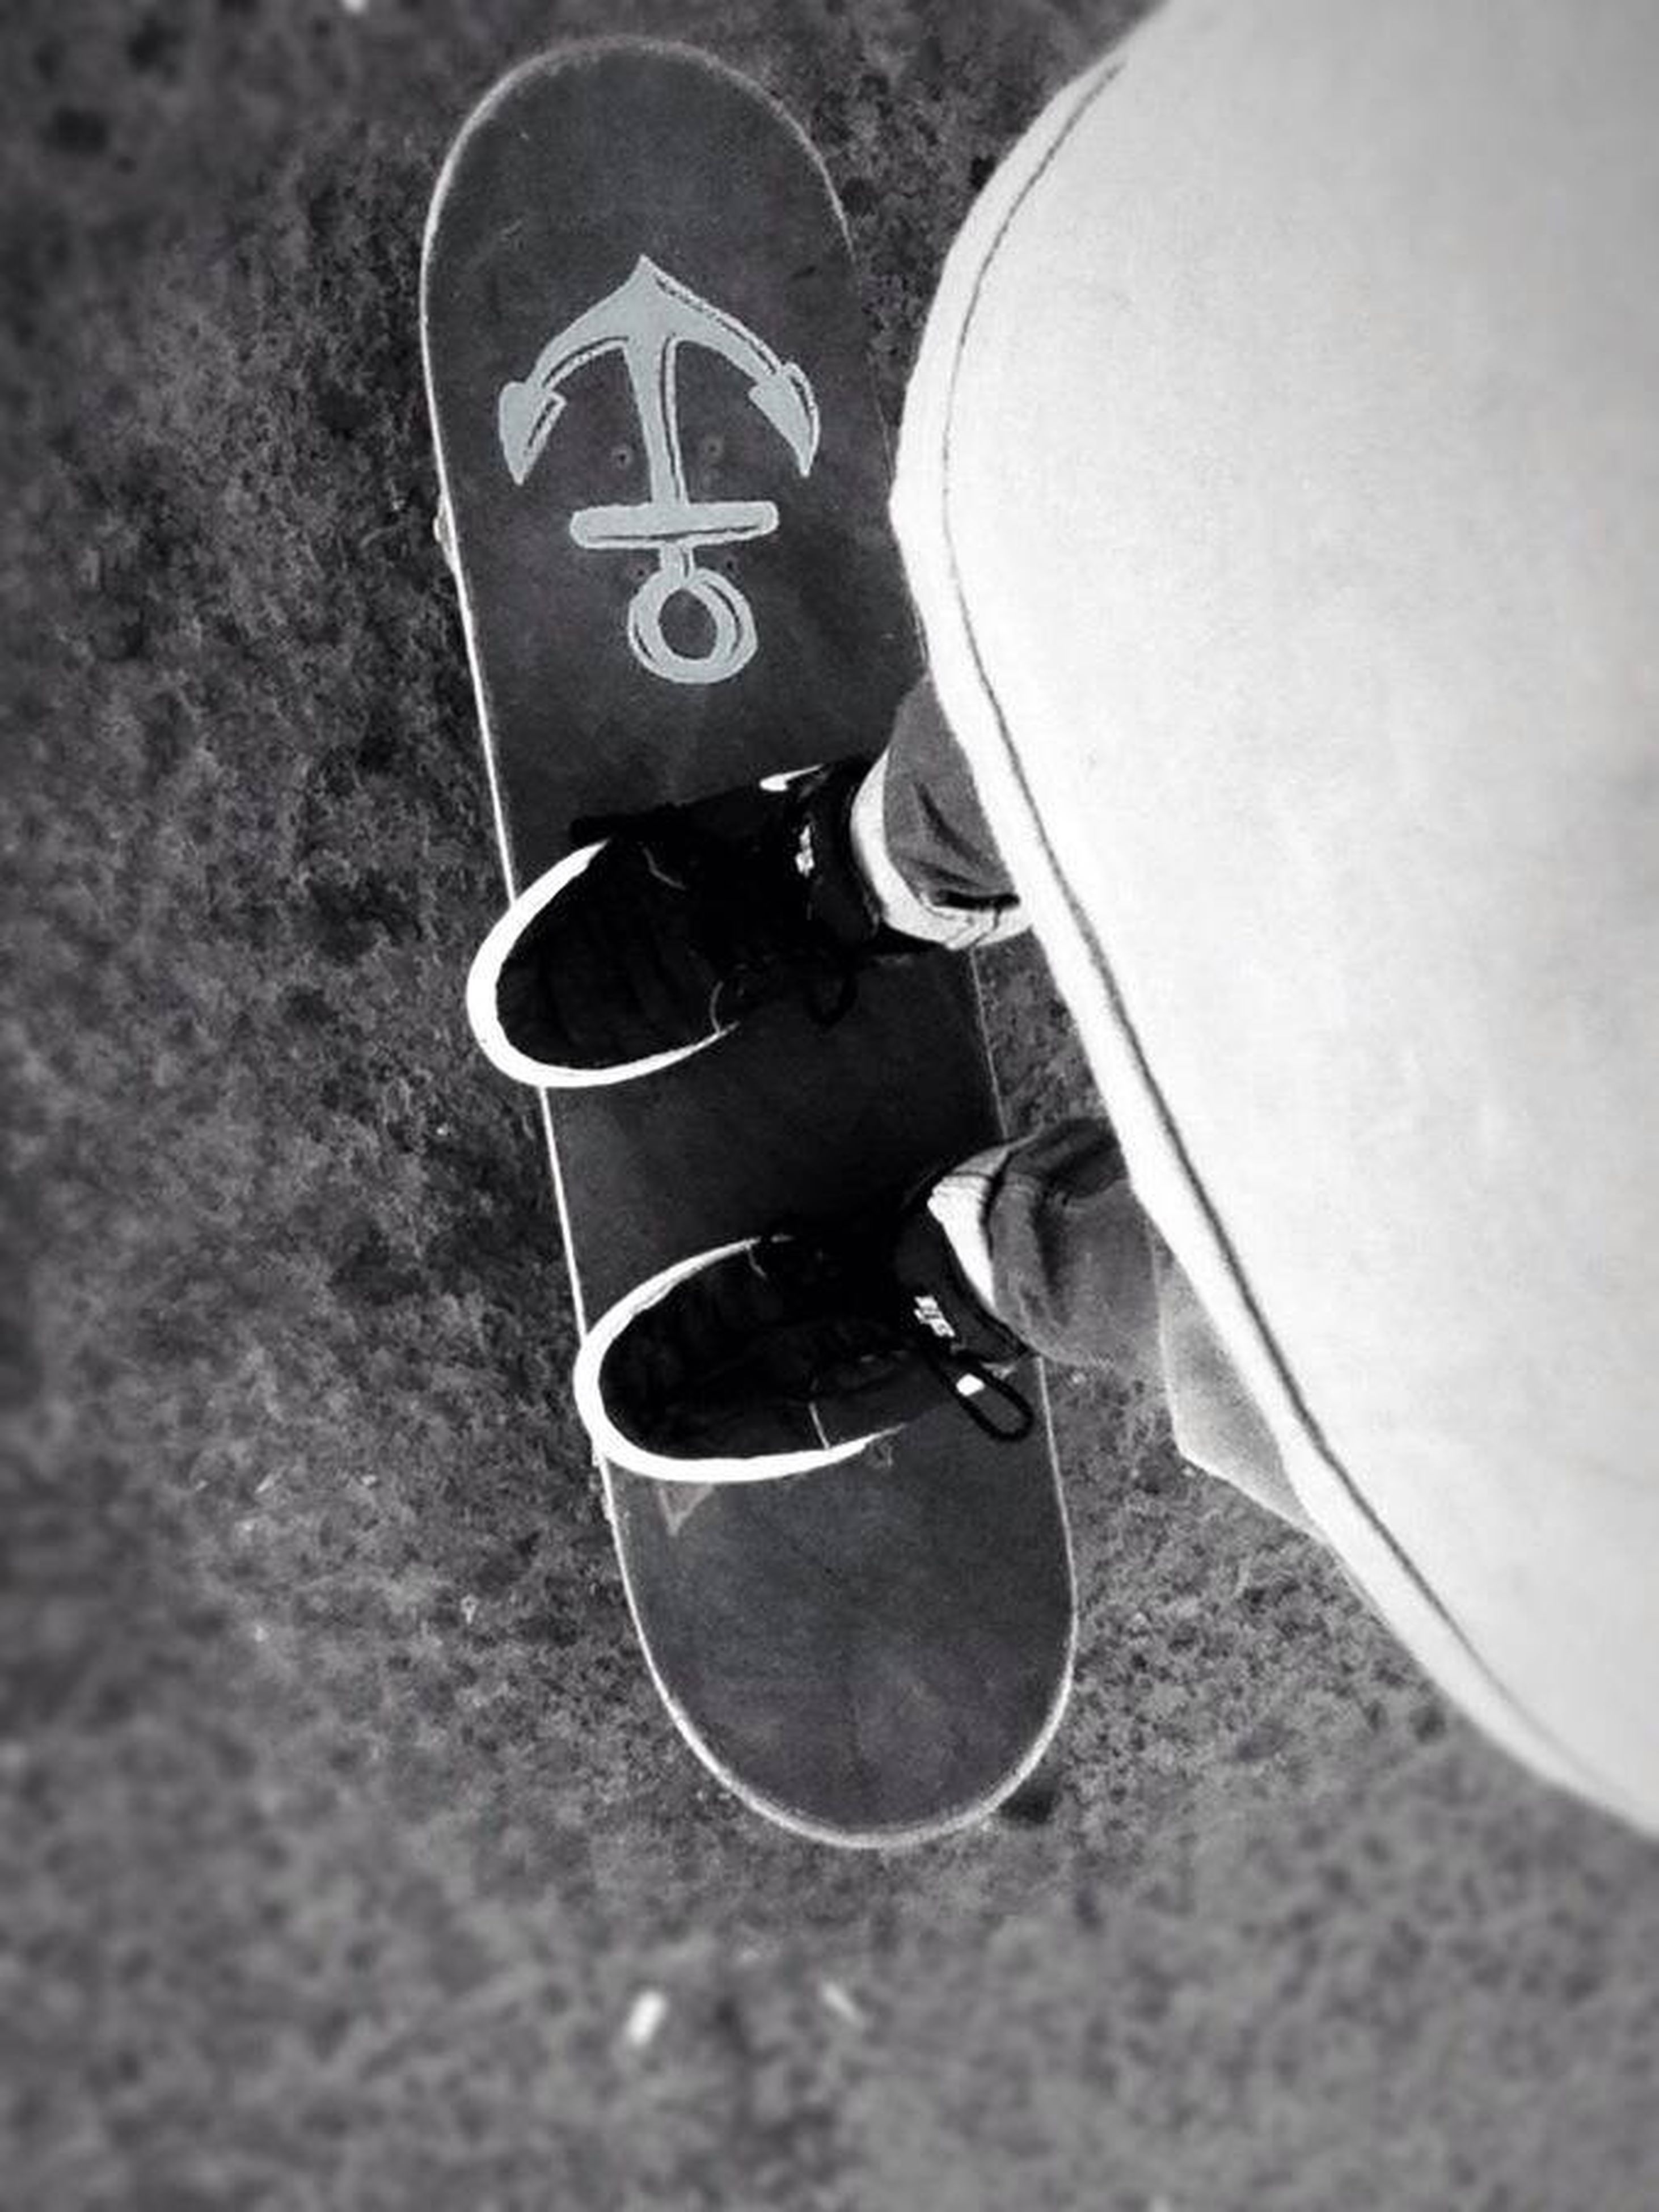 shoe, footwear, high angle view, low section, person, close-up, street, pair, shadow, canvas shoe, still life, metal, day, single object, men, selective focus, skateboard